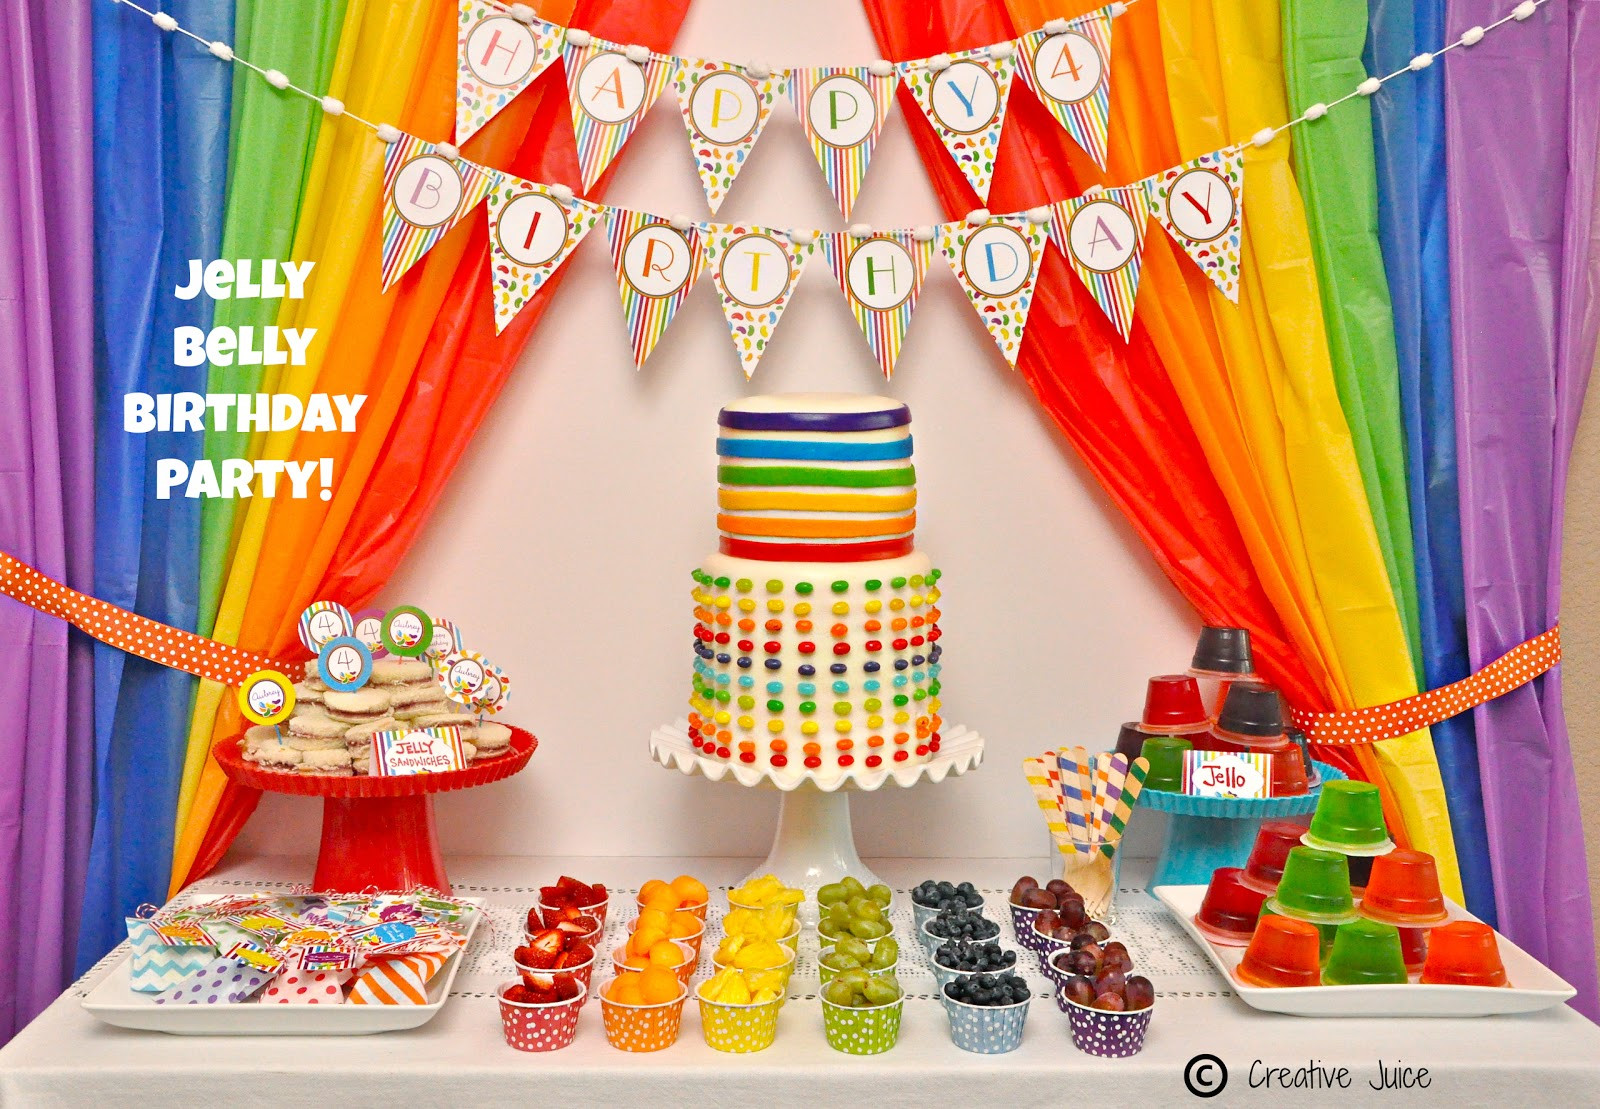 Best ideas about Rainbow Birthday Decorations . Save or Pin Rainbow Jelly Bean Birthday Party Ideas Party Ideas Now.